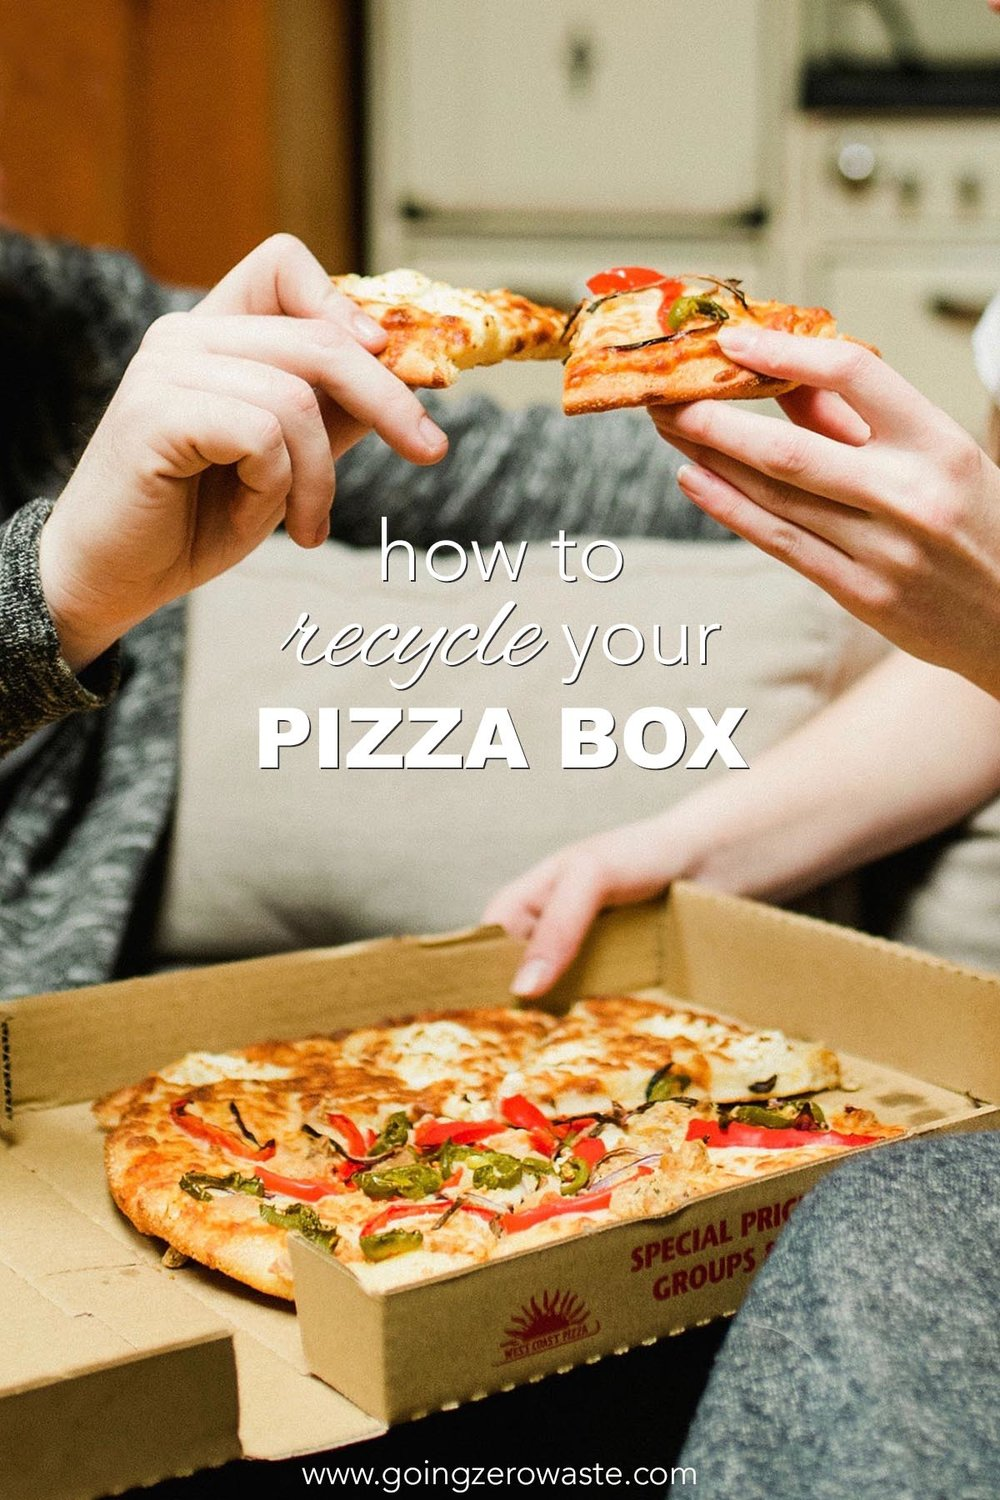 How to Recycle Your Pizza Box from www.goingzerowaaste.com #pizza #howtorecycle #pizzabox #zerowaste #recycle